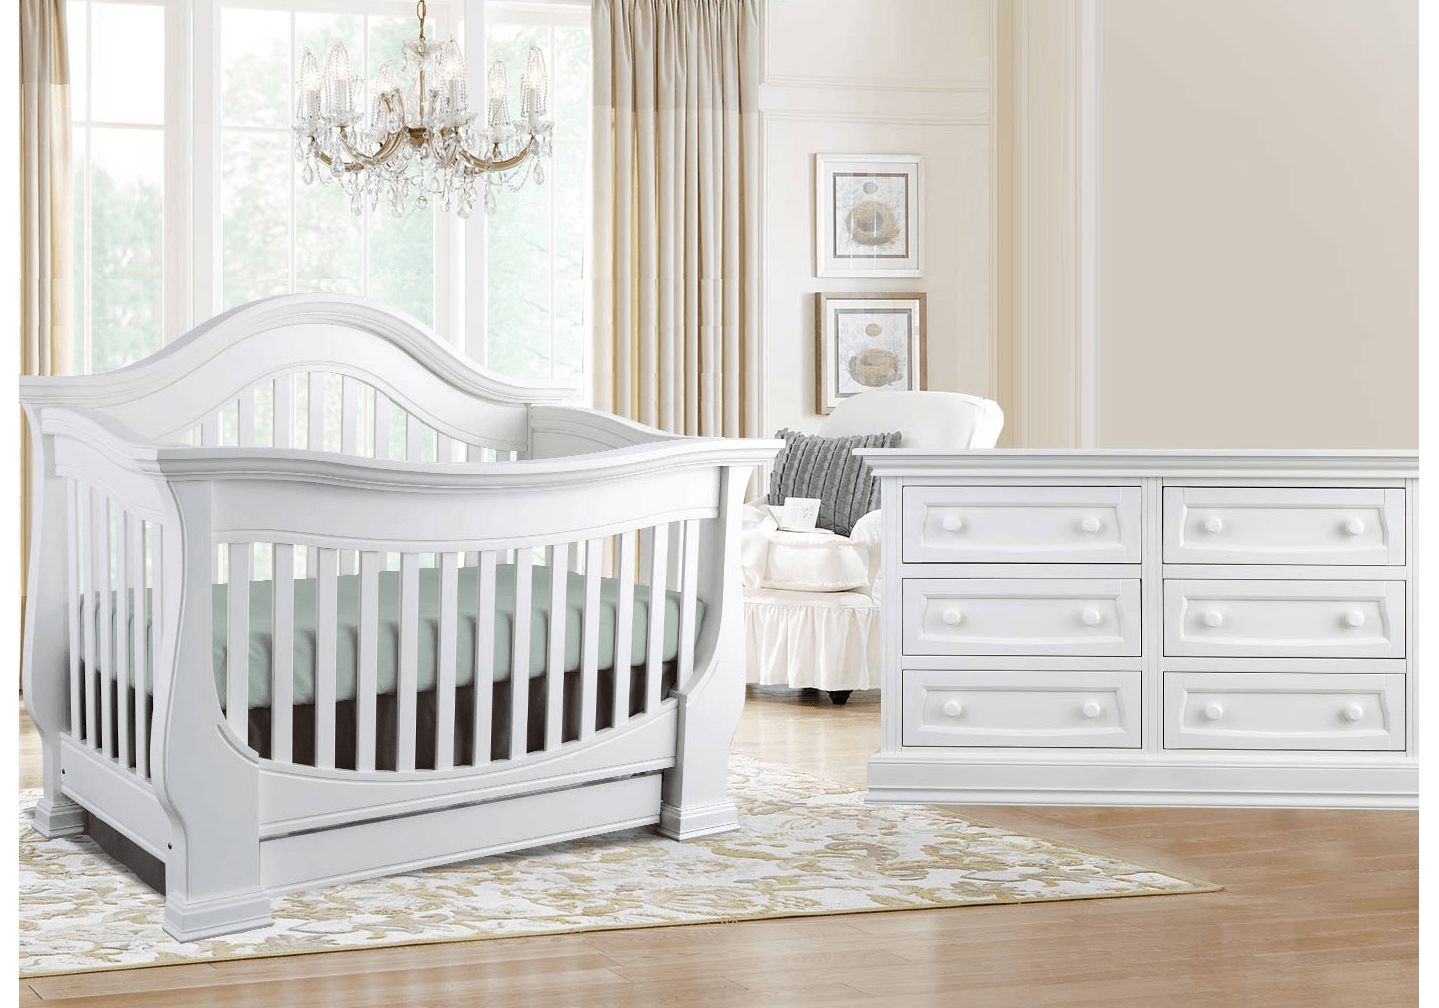 Baby Appleseed Davenport Convertible Crib in Pure White